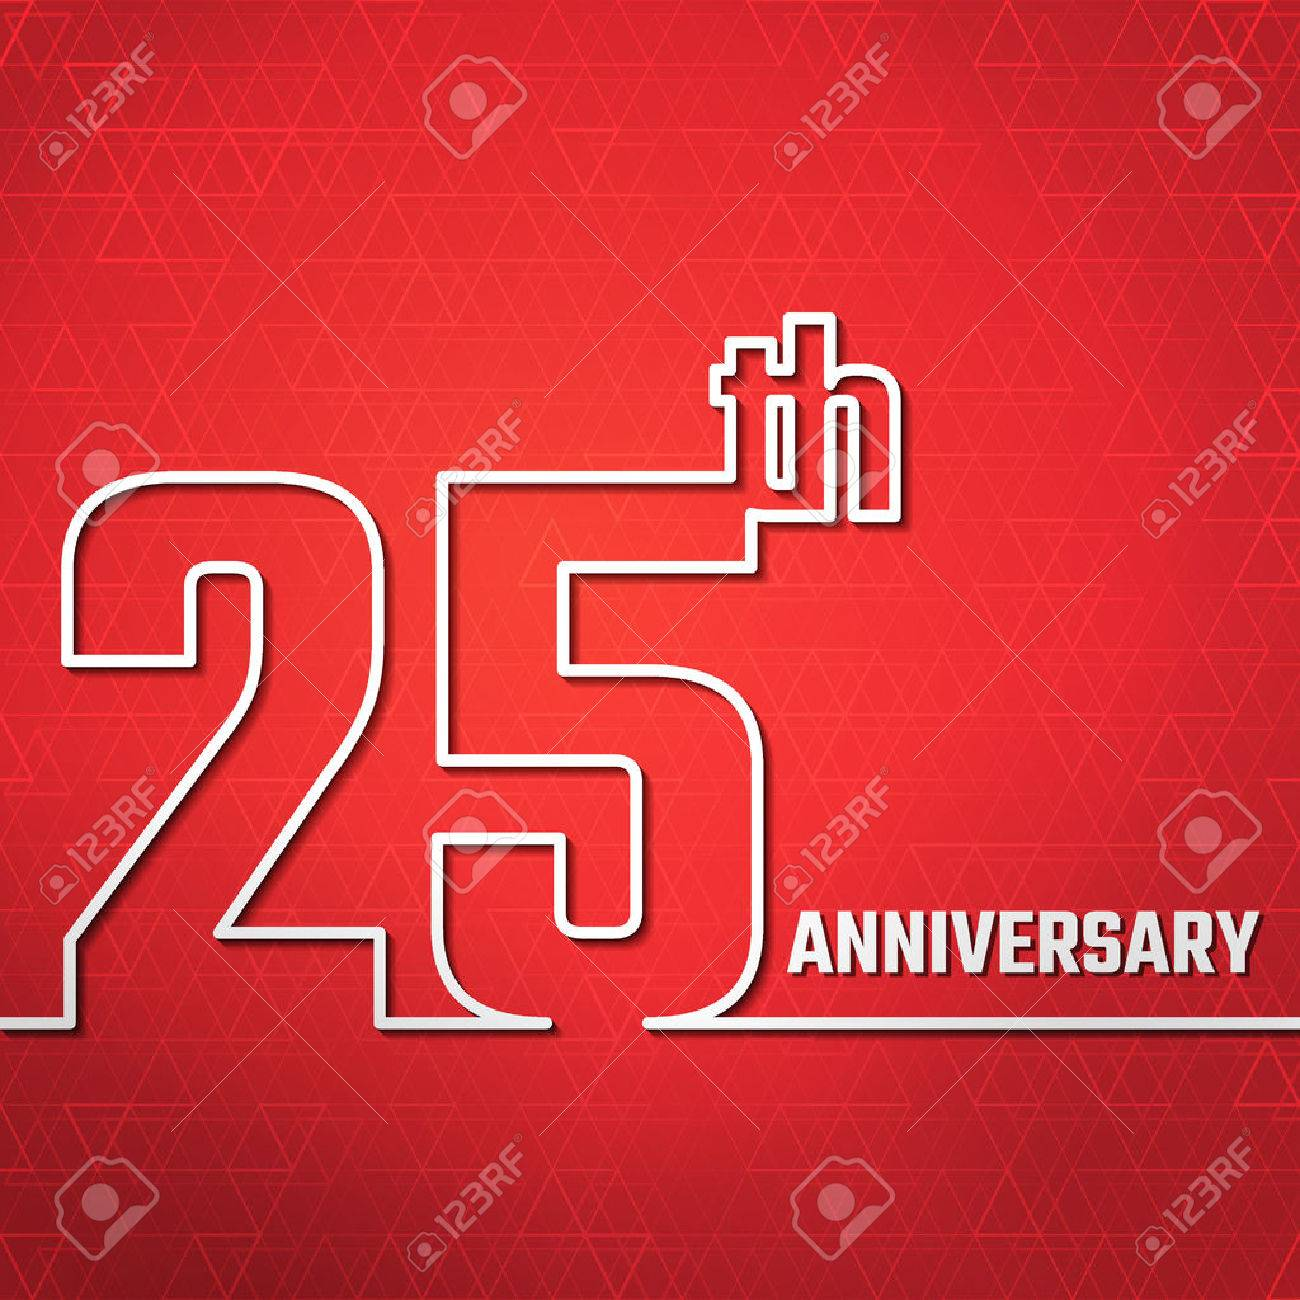 Vector illustration of anniversary 25th outline for design website vector illustration of anniversary 25th outline for design website background banner jubilee kristyandbryce Choice Image